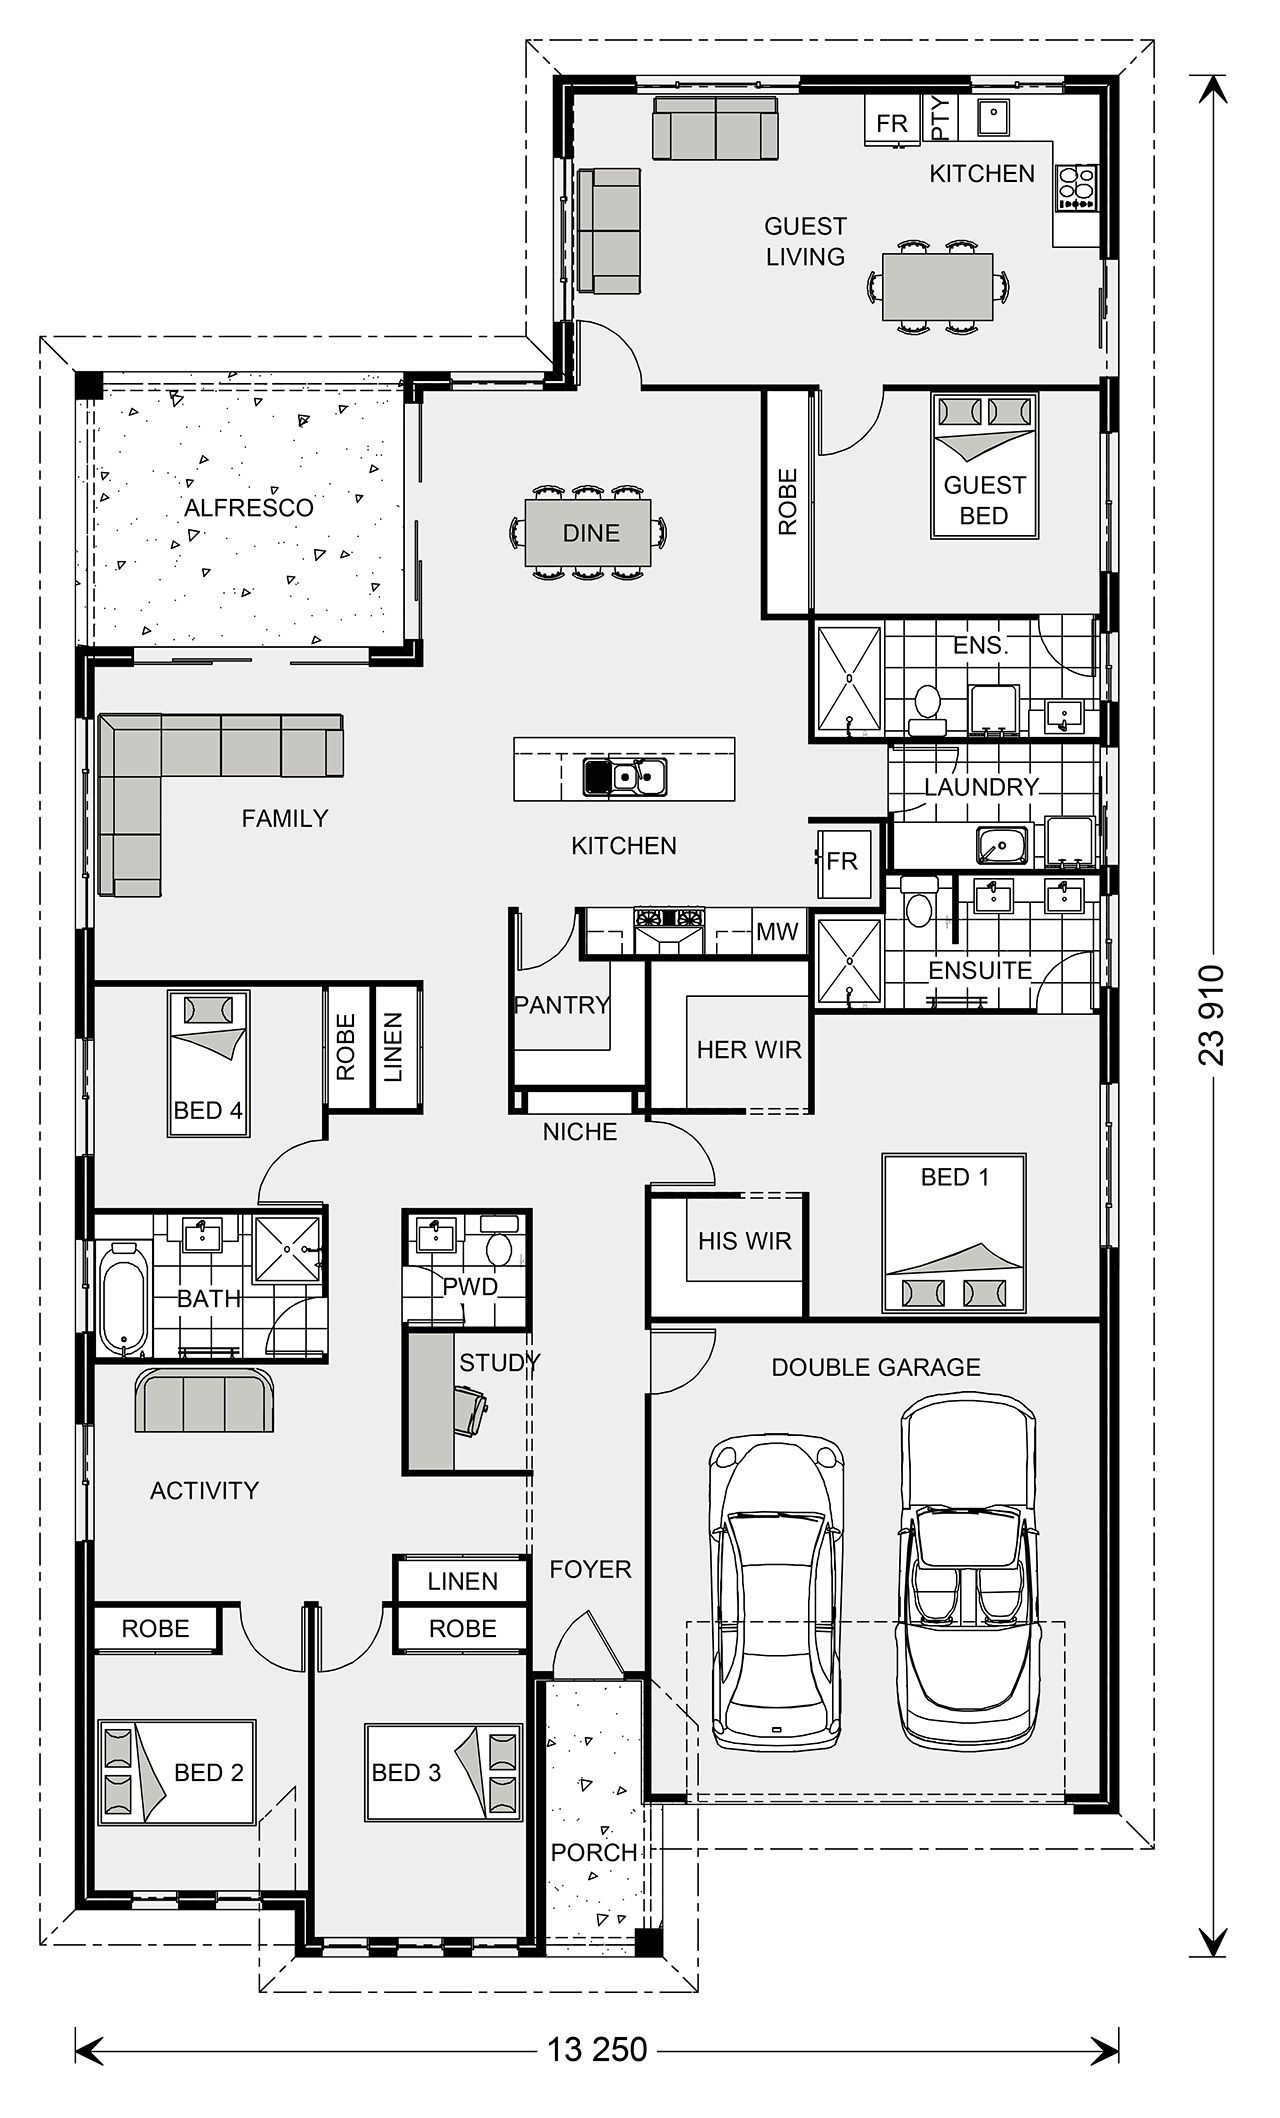 Gj Gardner Single Story House With Attached Granny Flat Floor Plan House Plans One Story Multigenerational House Plans House Plans Australia